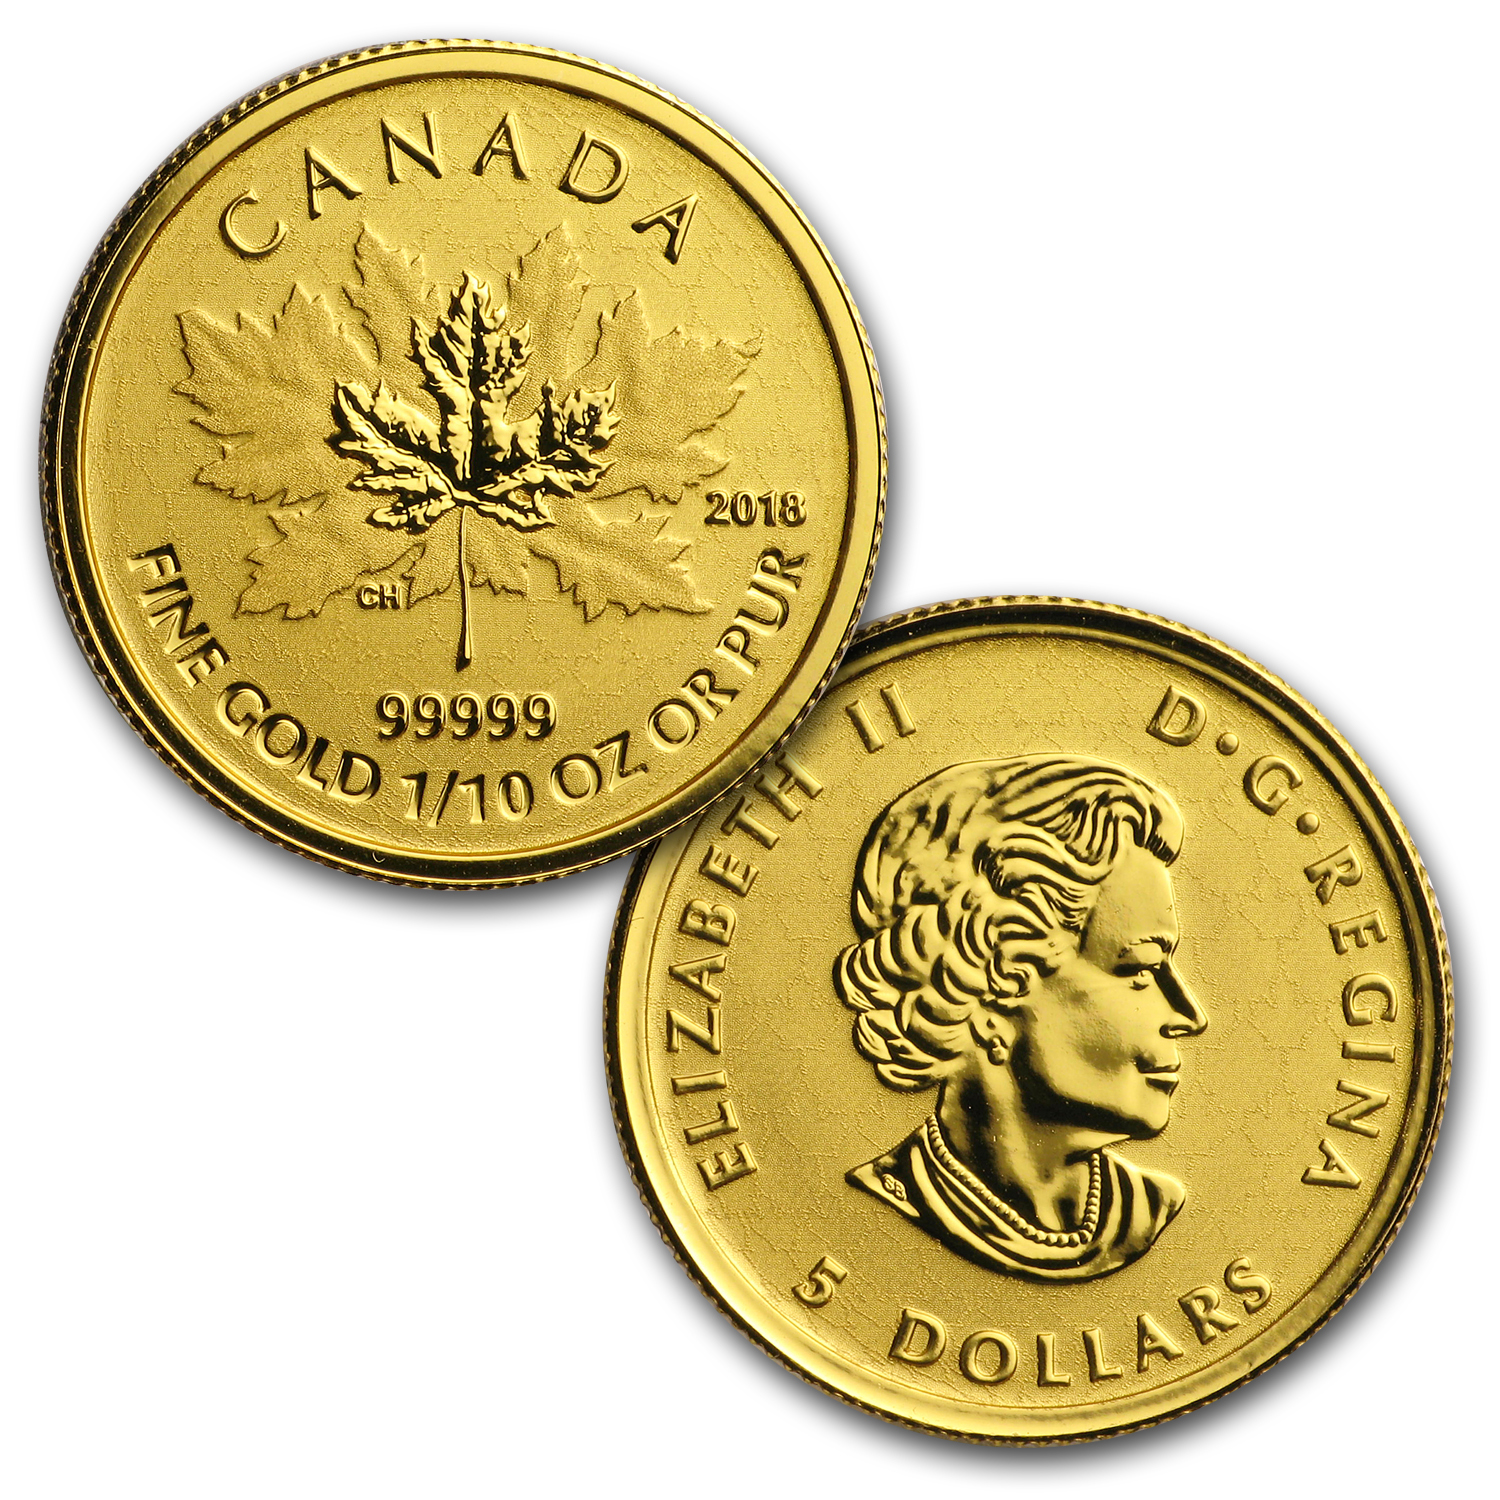 2018 Canada 4-Coin Gold Fractional Maple Leaf Set (1.4 oz)